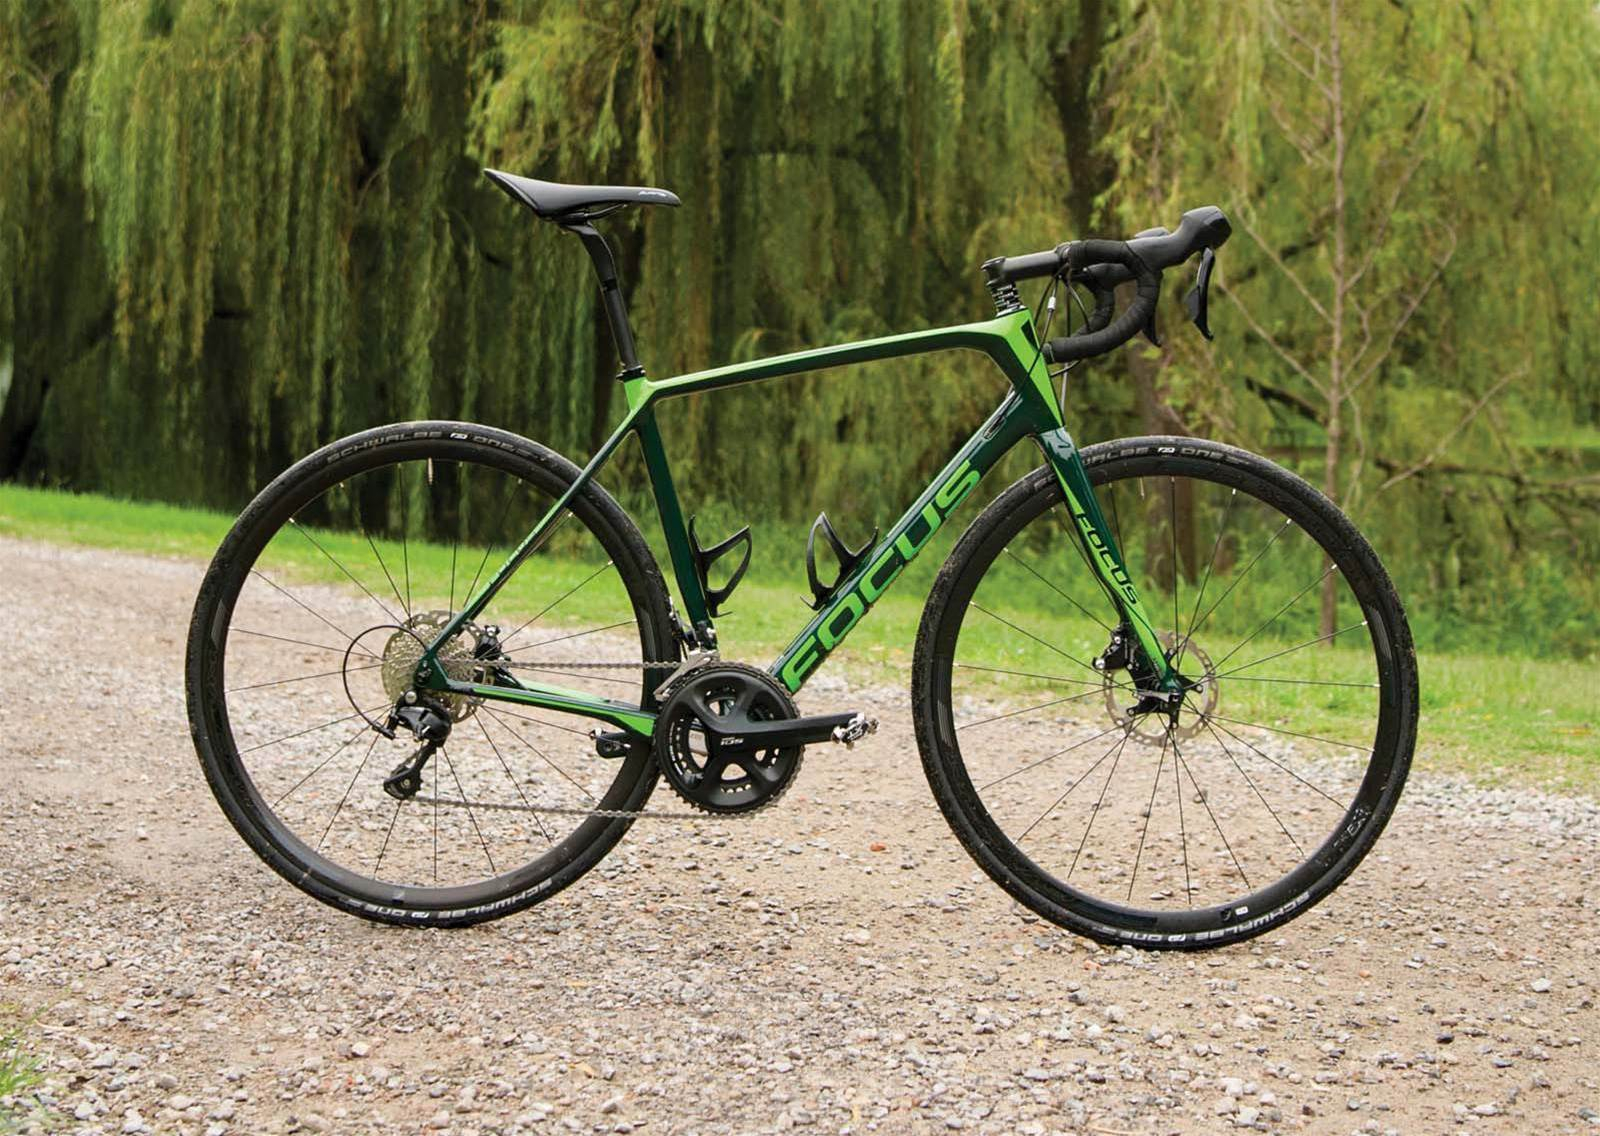 TESTED: Focus Paralane 105